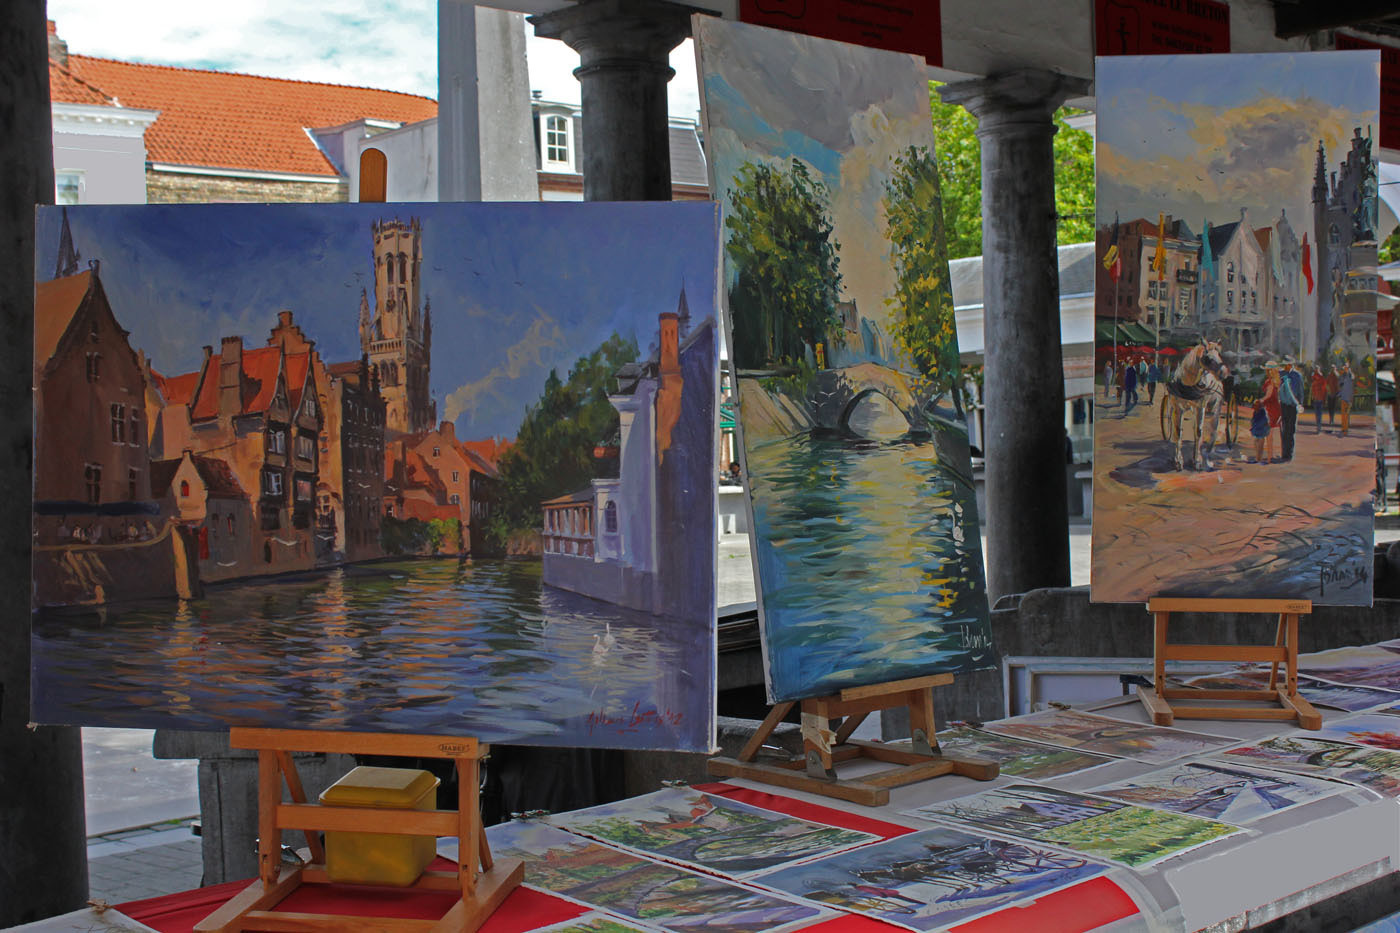 19 BRUGES IN OILS by Liz Turton